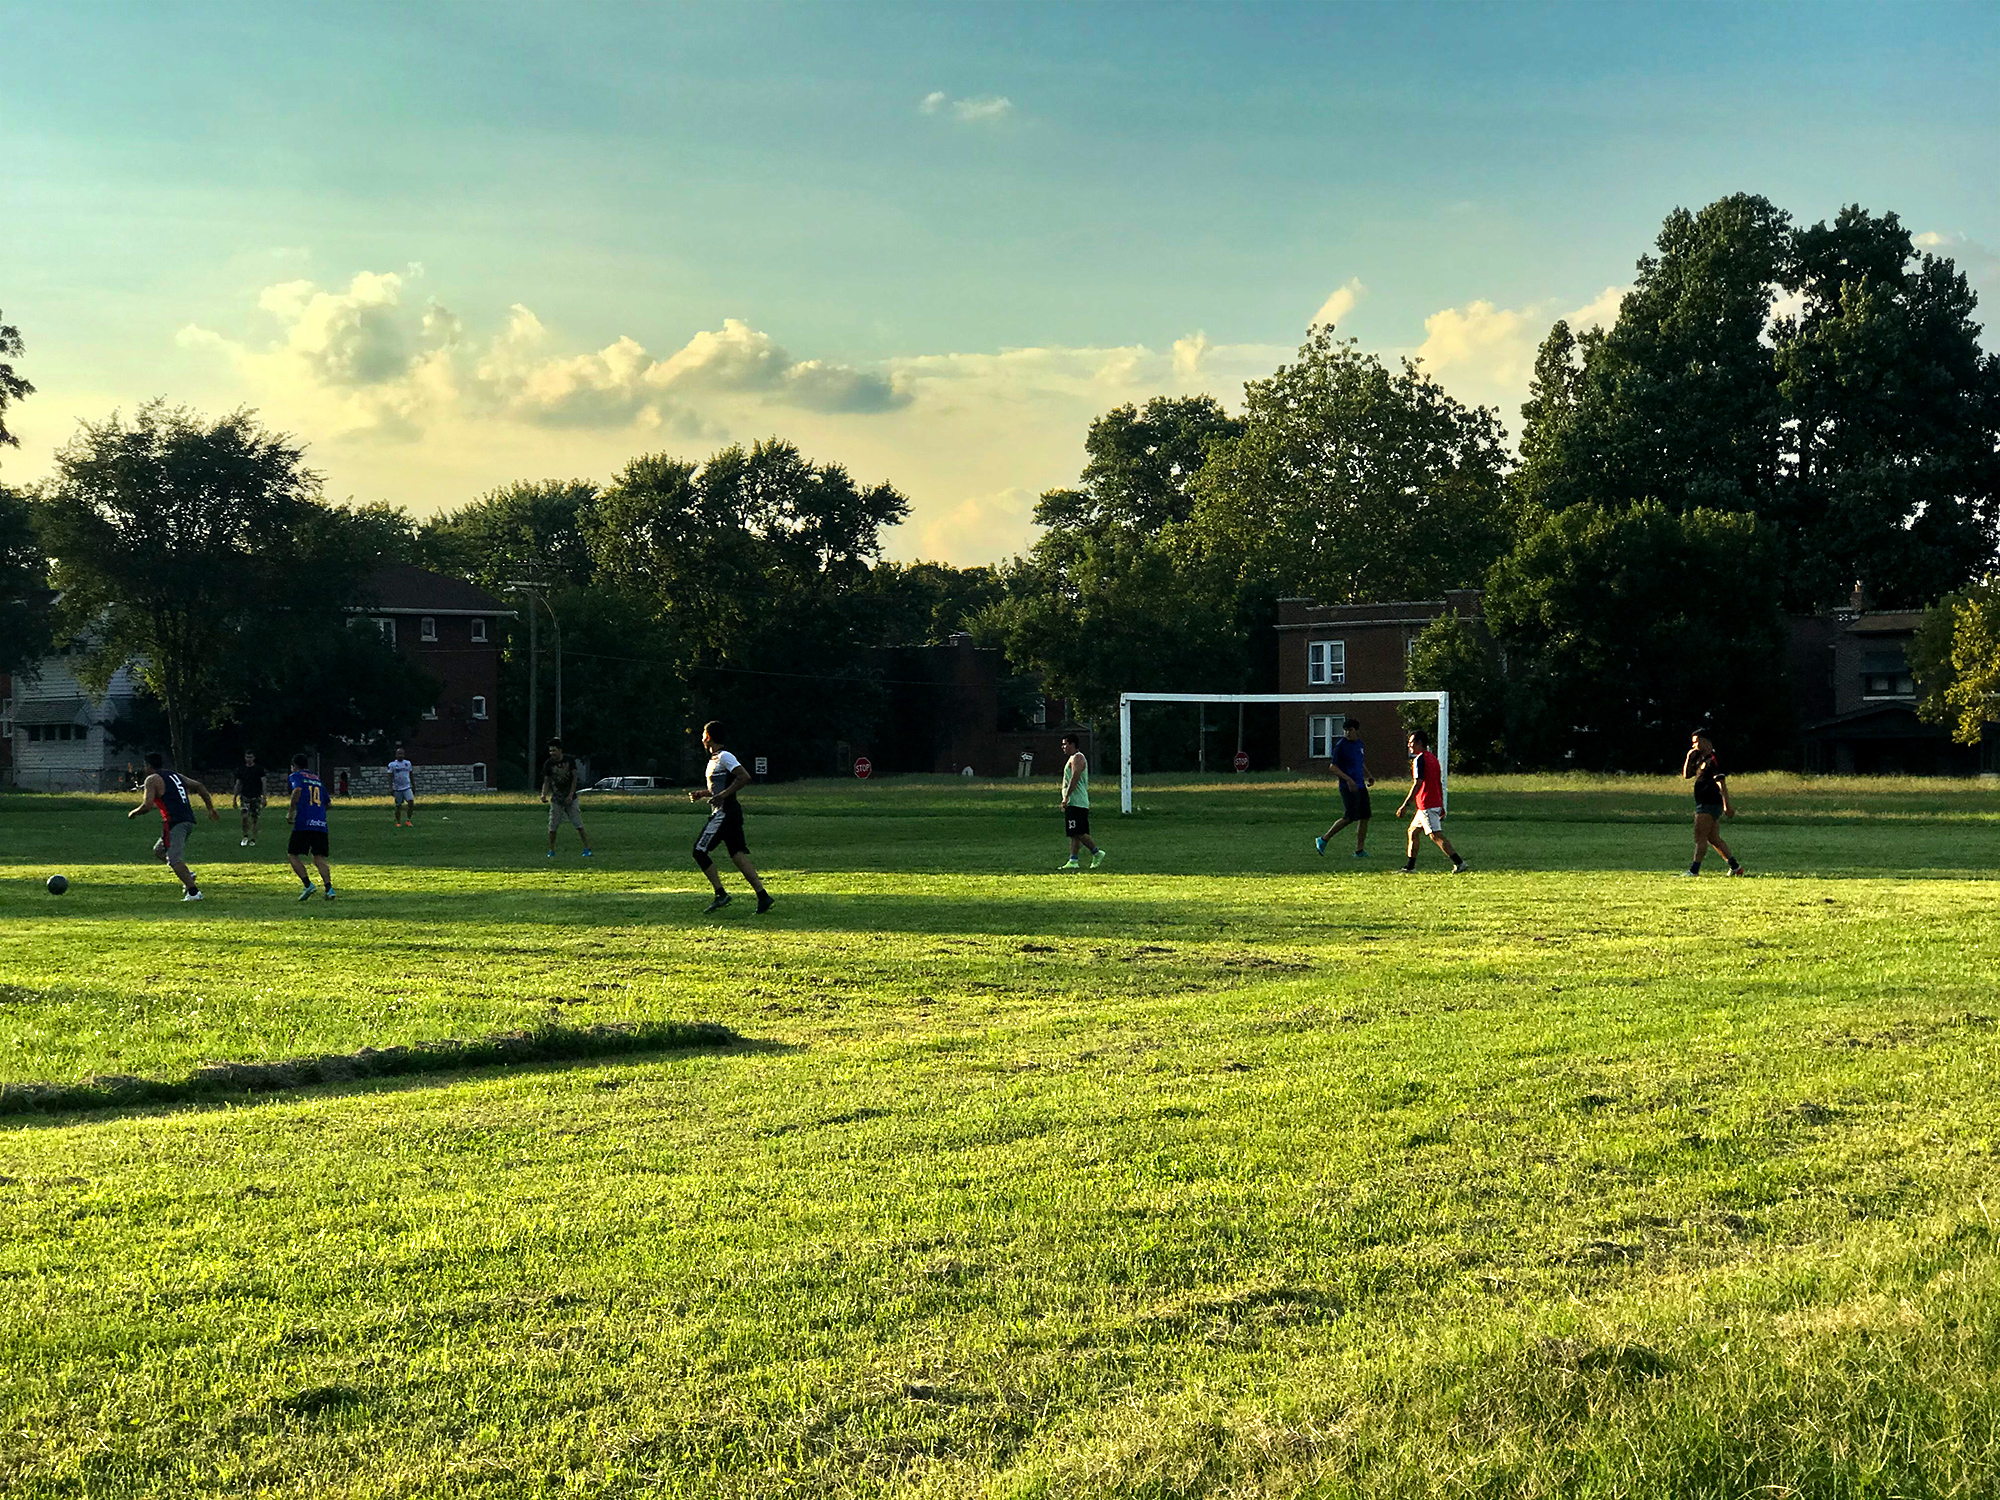 Soccer at Marquette Park in Dutchtown, St. Louis, MO.